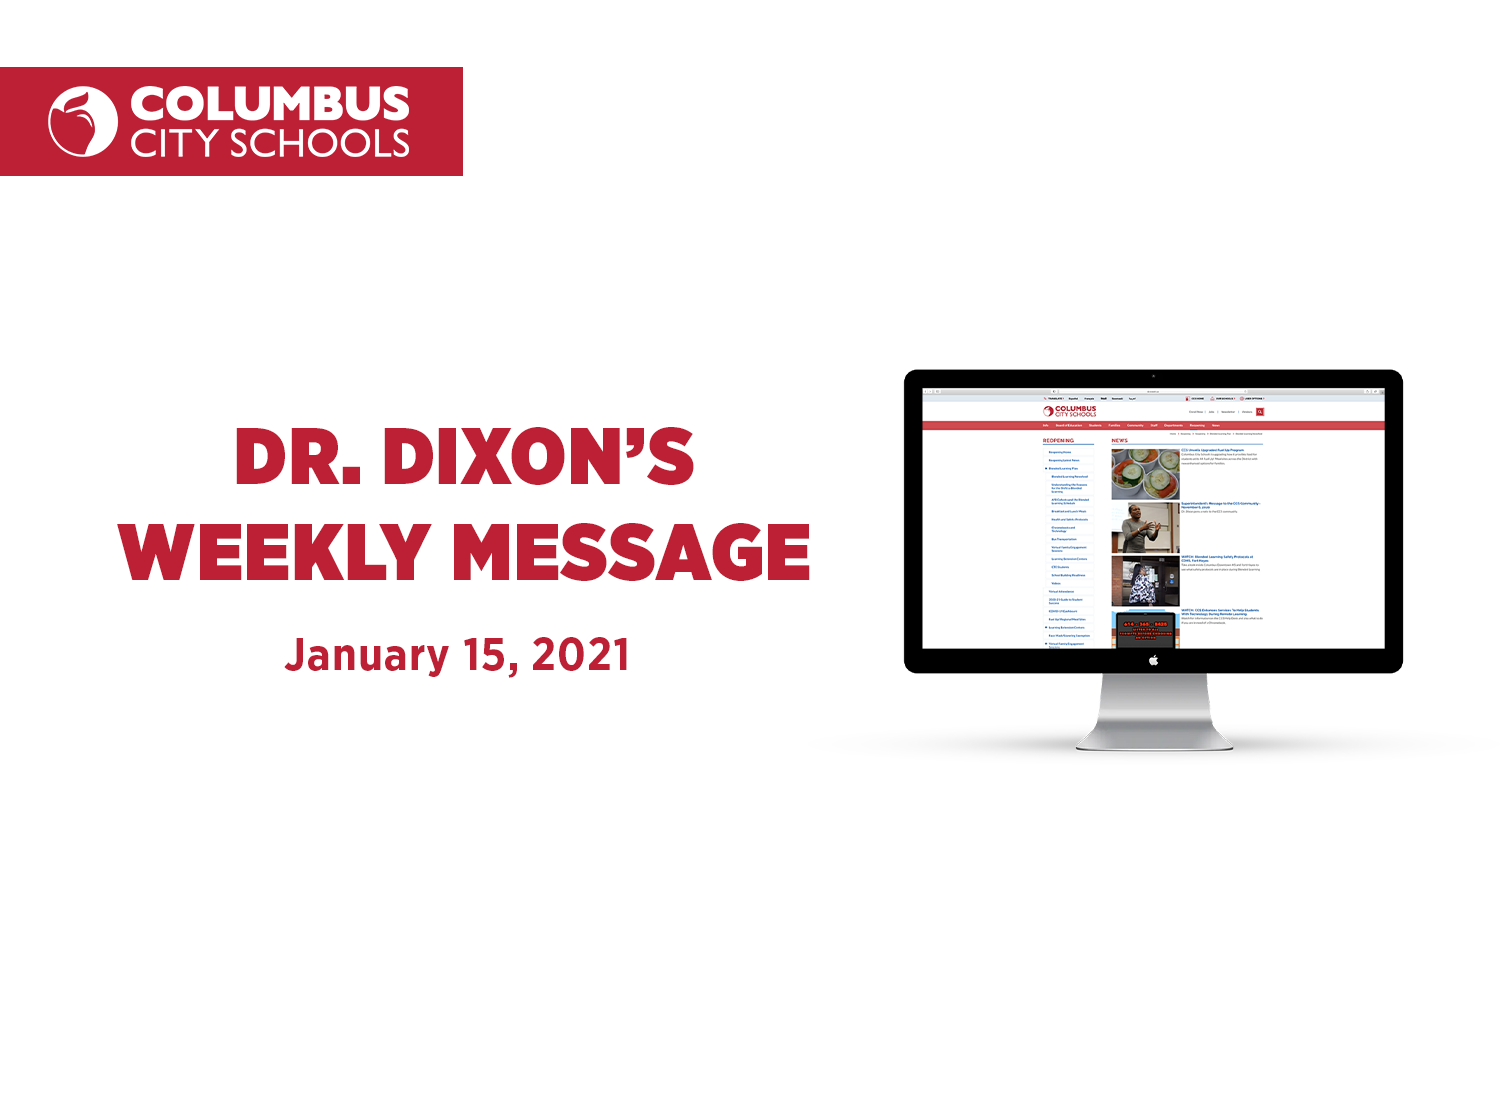 Superintendent's Weekly Message - January 15, 2021